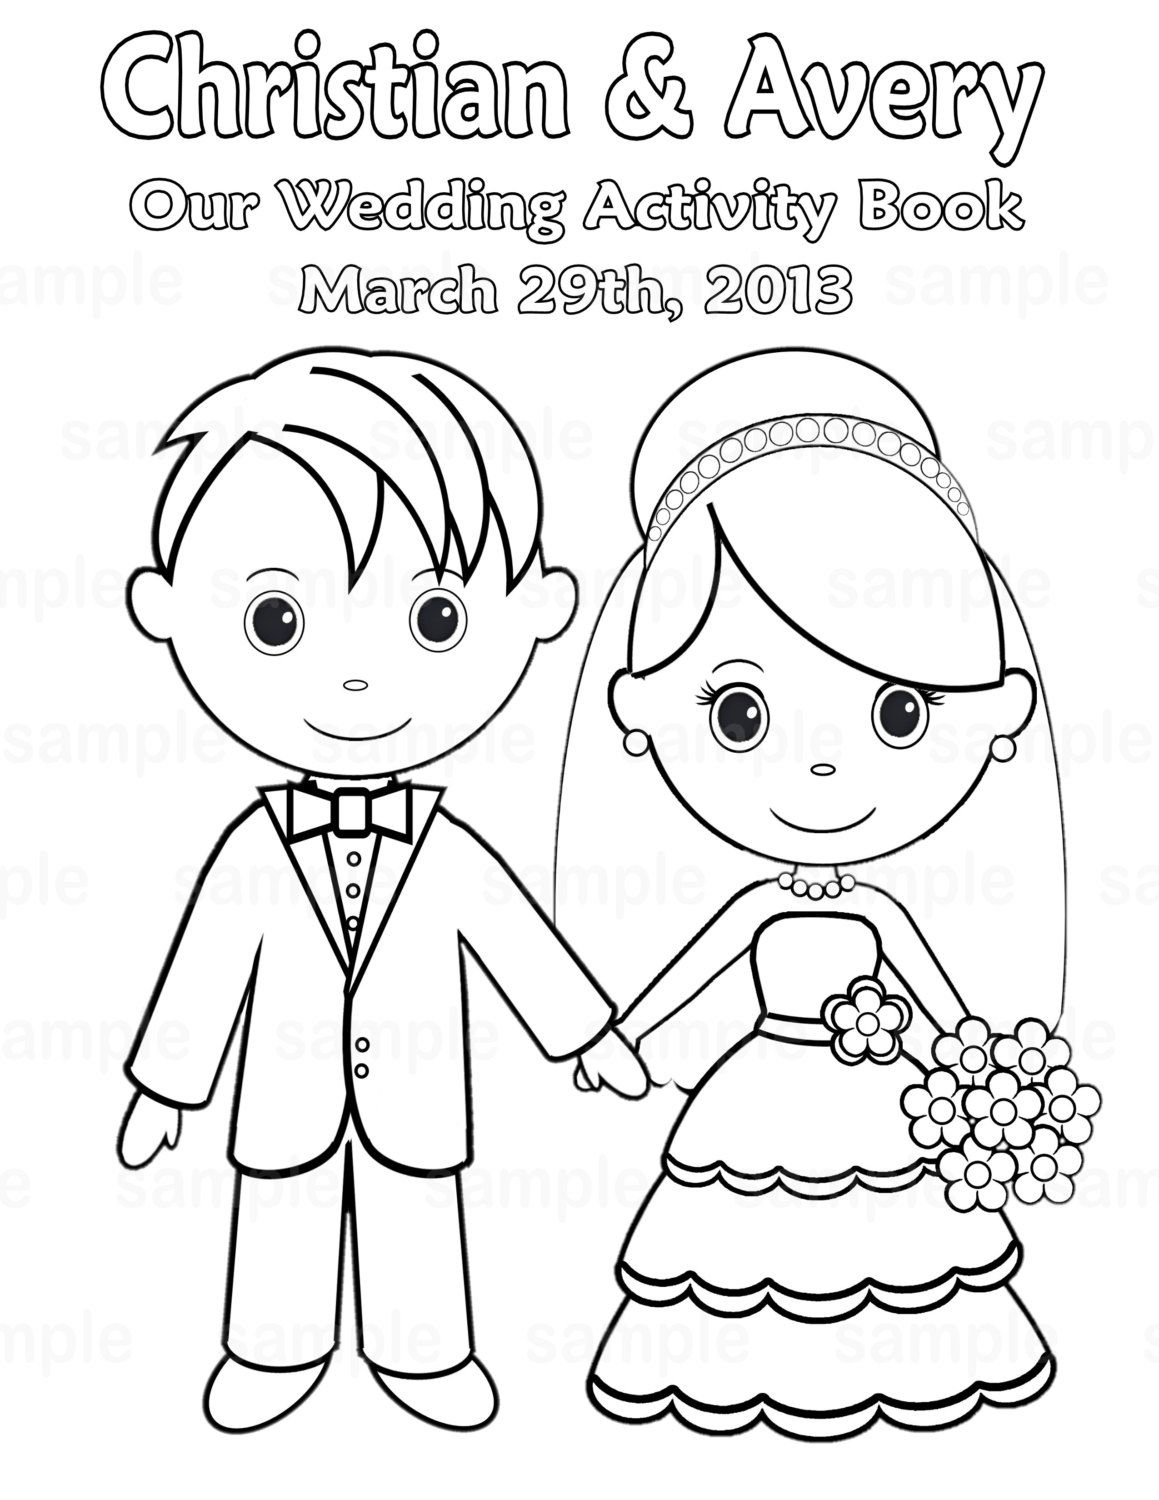 Wedding Coloring Pages Free Wedding Coloring Book Pages Wedding Coloring Pages Wedding With Kids Book Favors